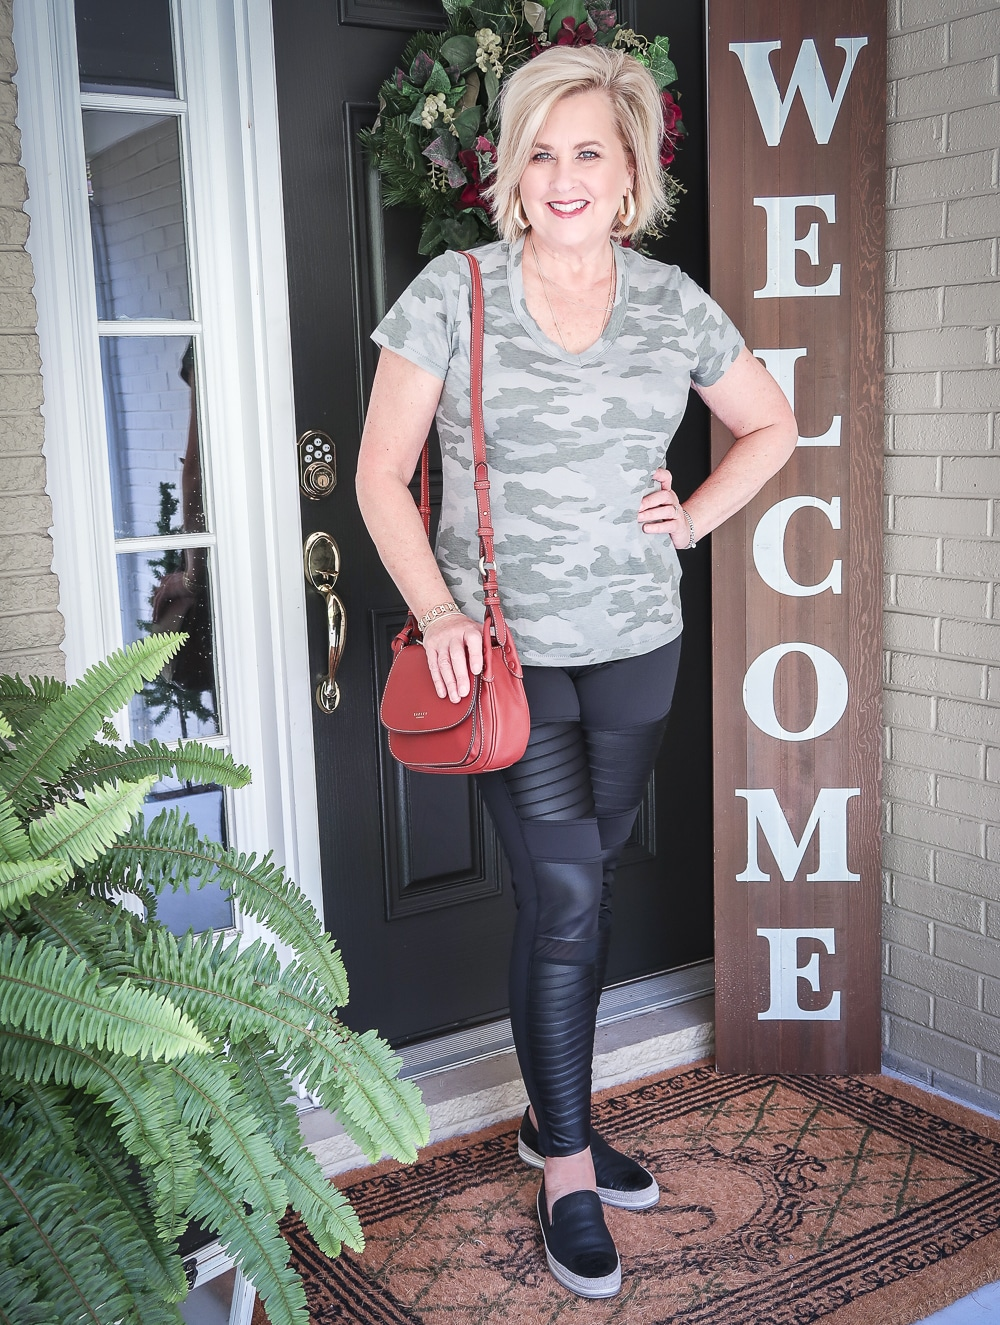 Fashion Blogger 50 Is Not Old is doing a Tuesday Try-On Session with Target and styling a camo v-neck tee shirt, black moto leggings, and a brown crossbody handbag